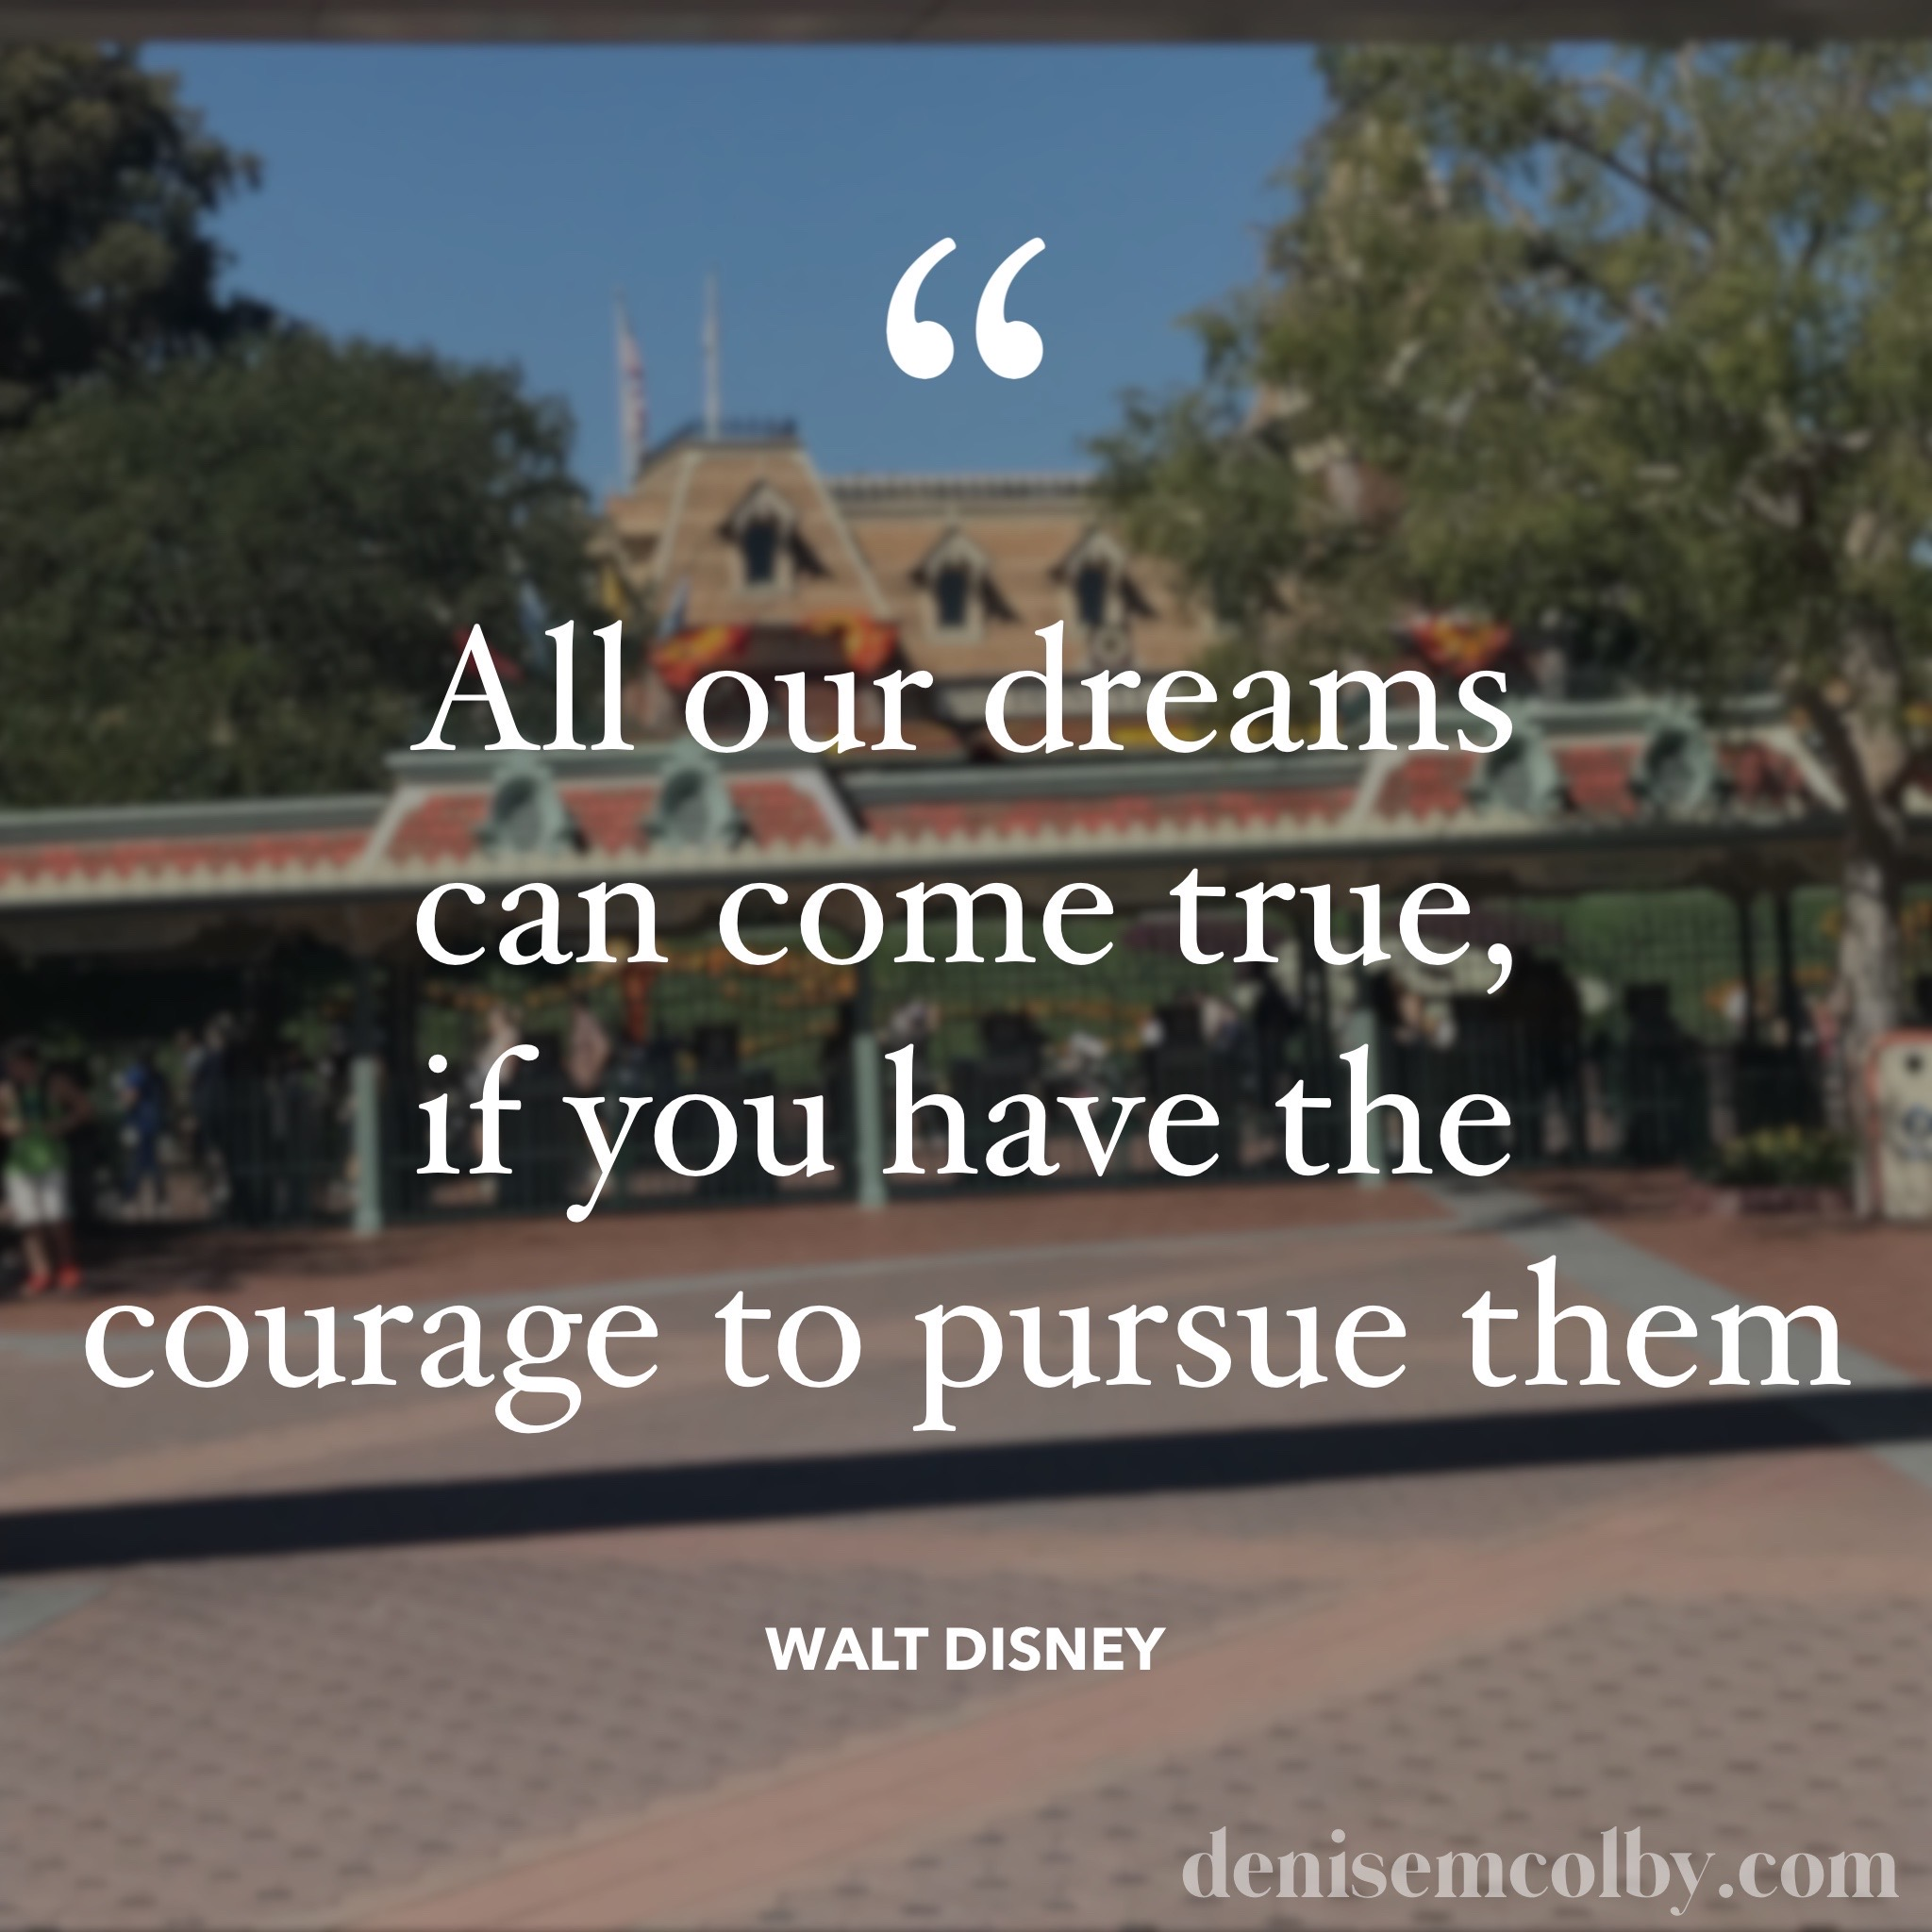 Courage quote All our dreams can come true, if you have the courage to pursue them by Walt Disney in front of Disneyland